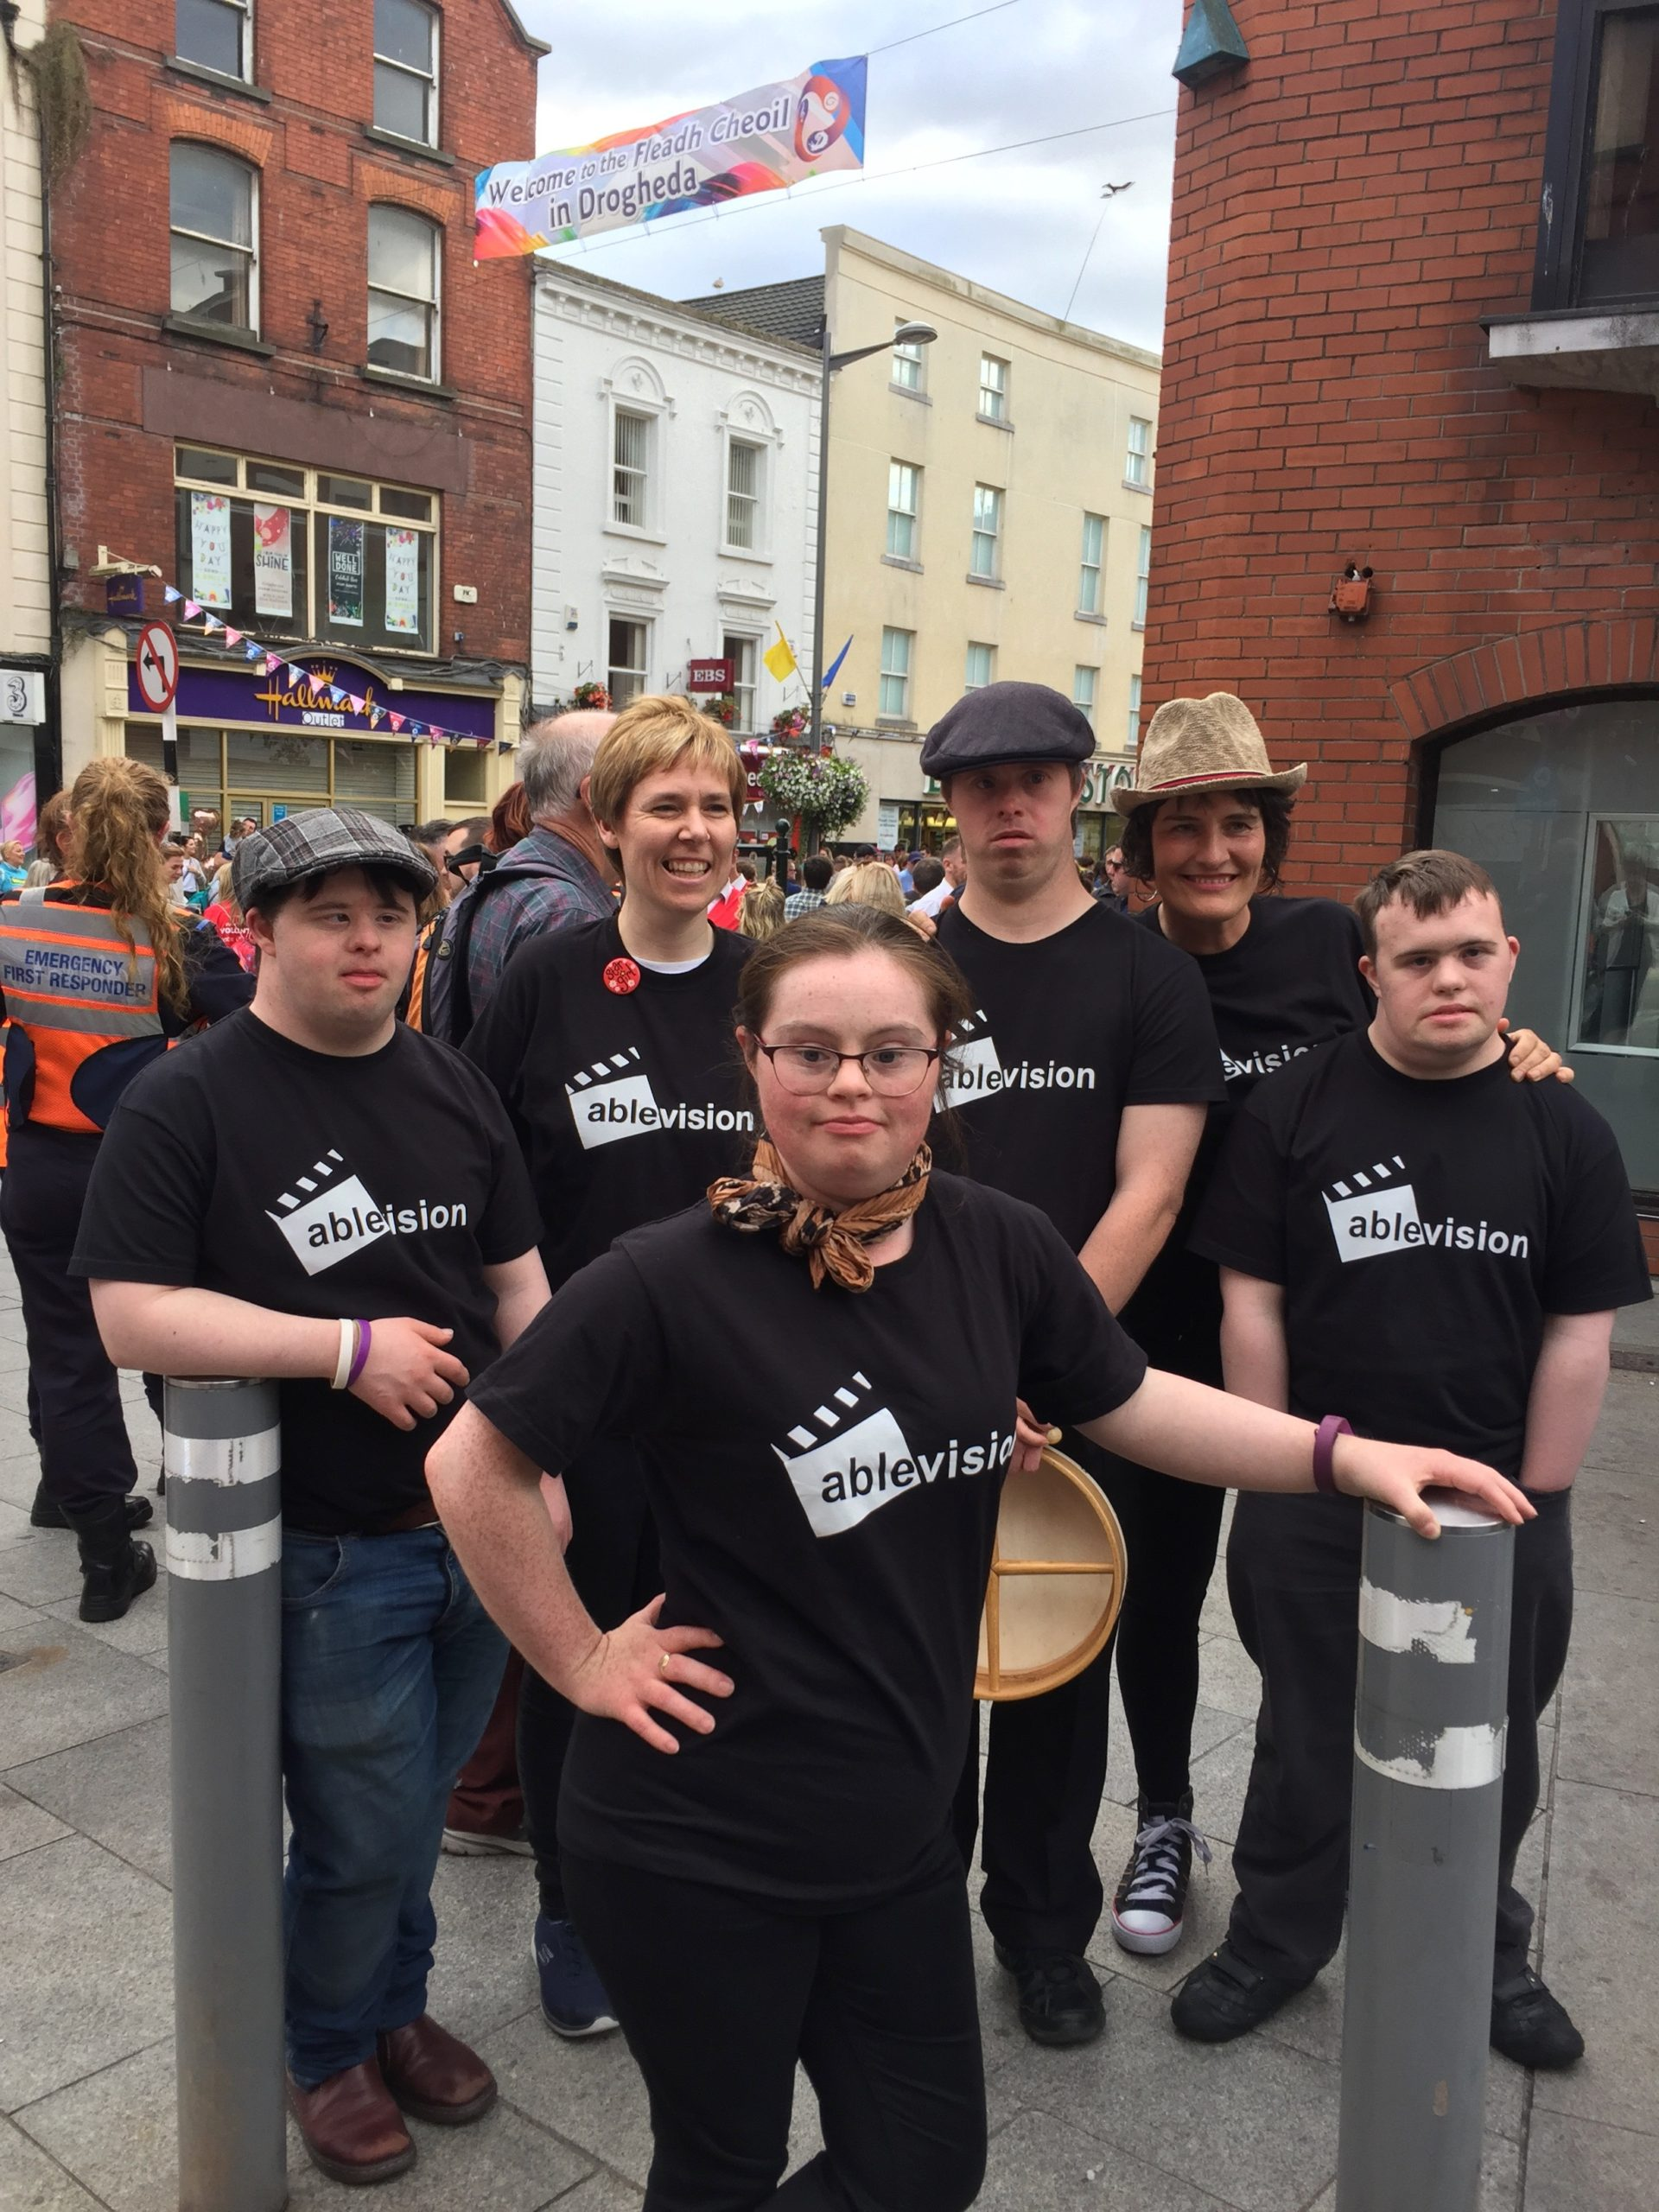 Ablevision Fleadh Crew 2019